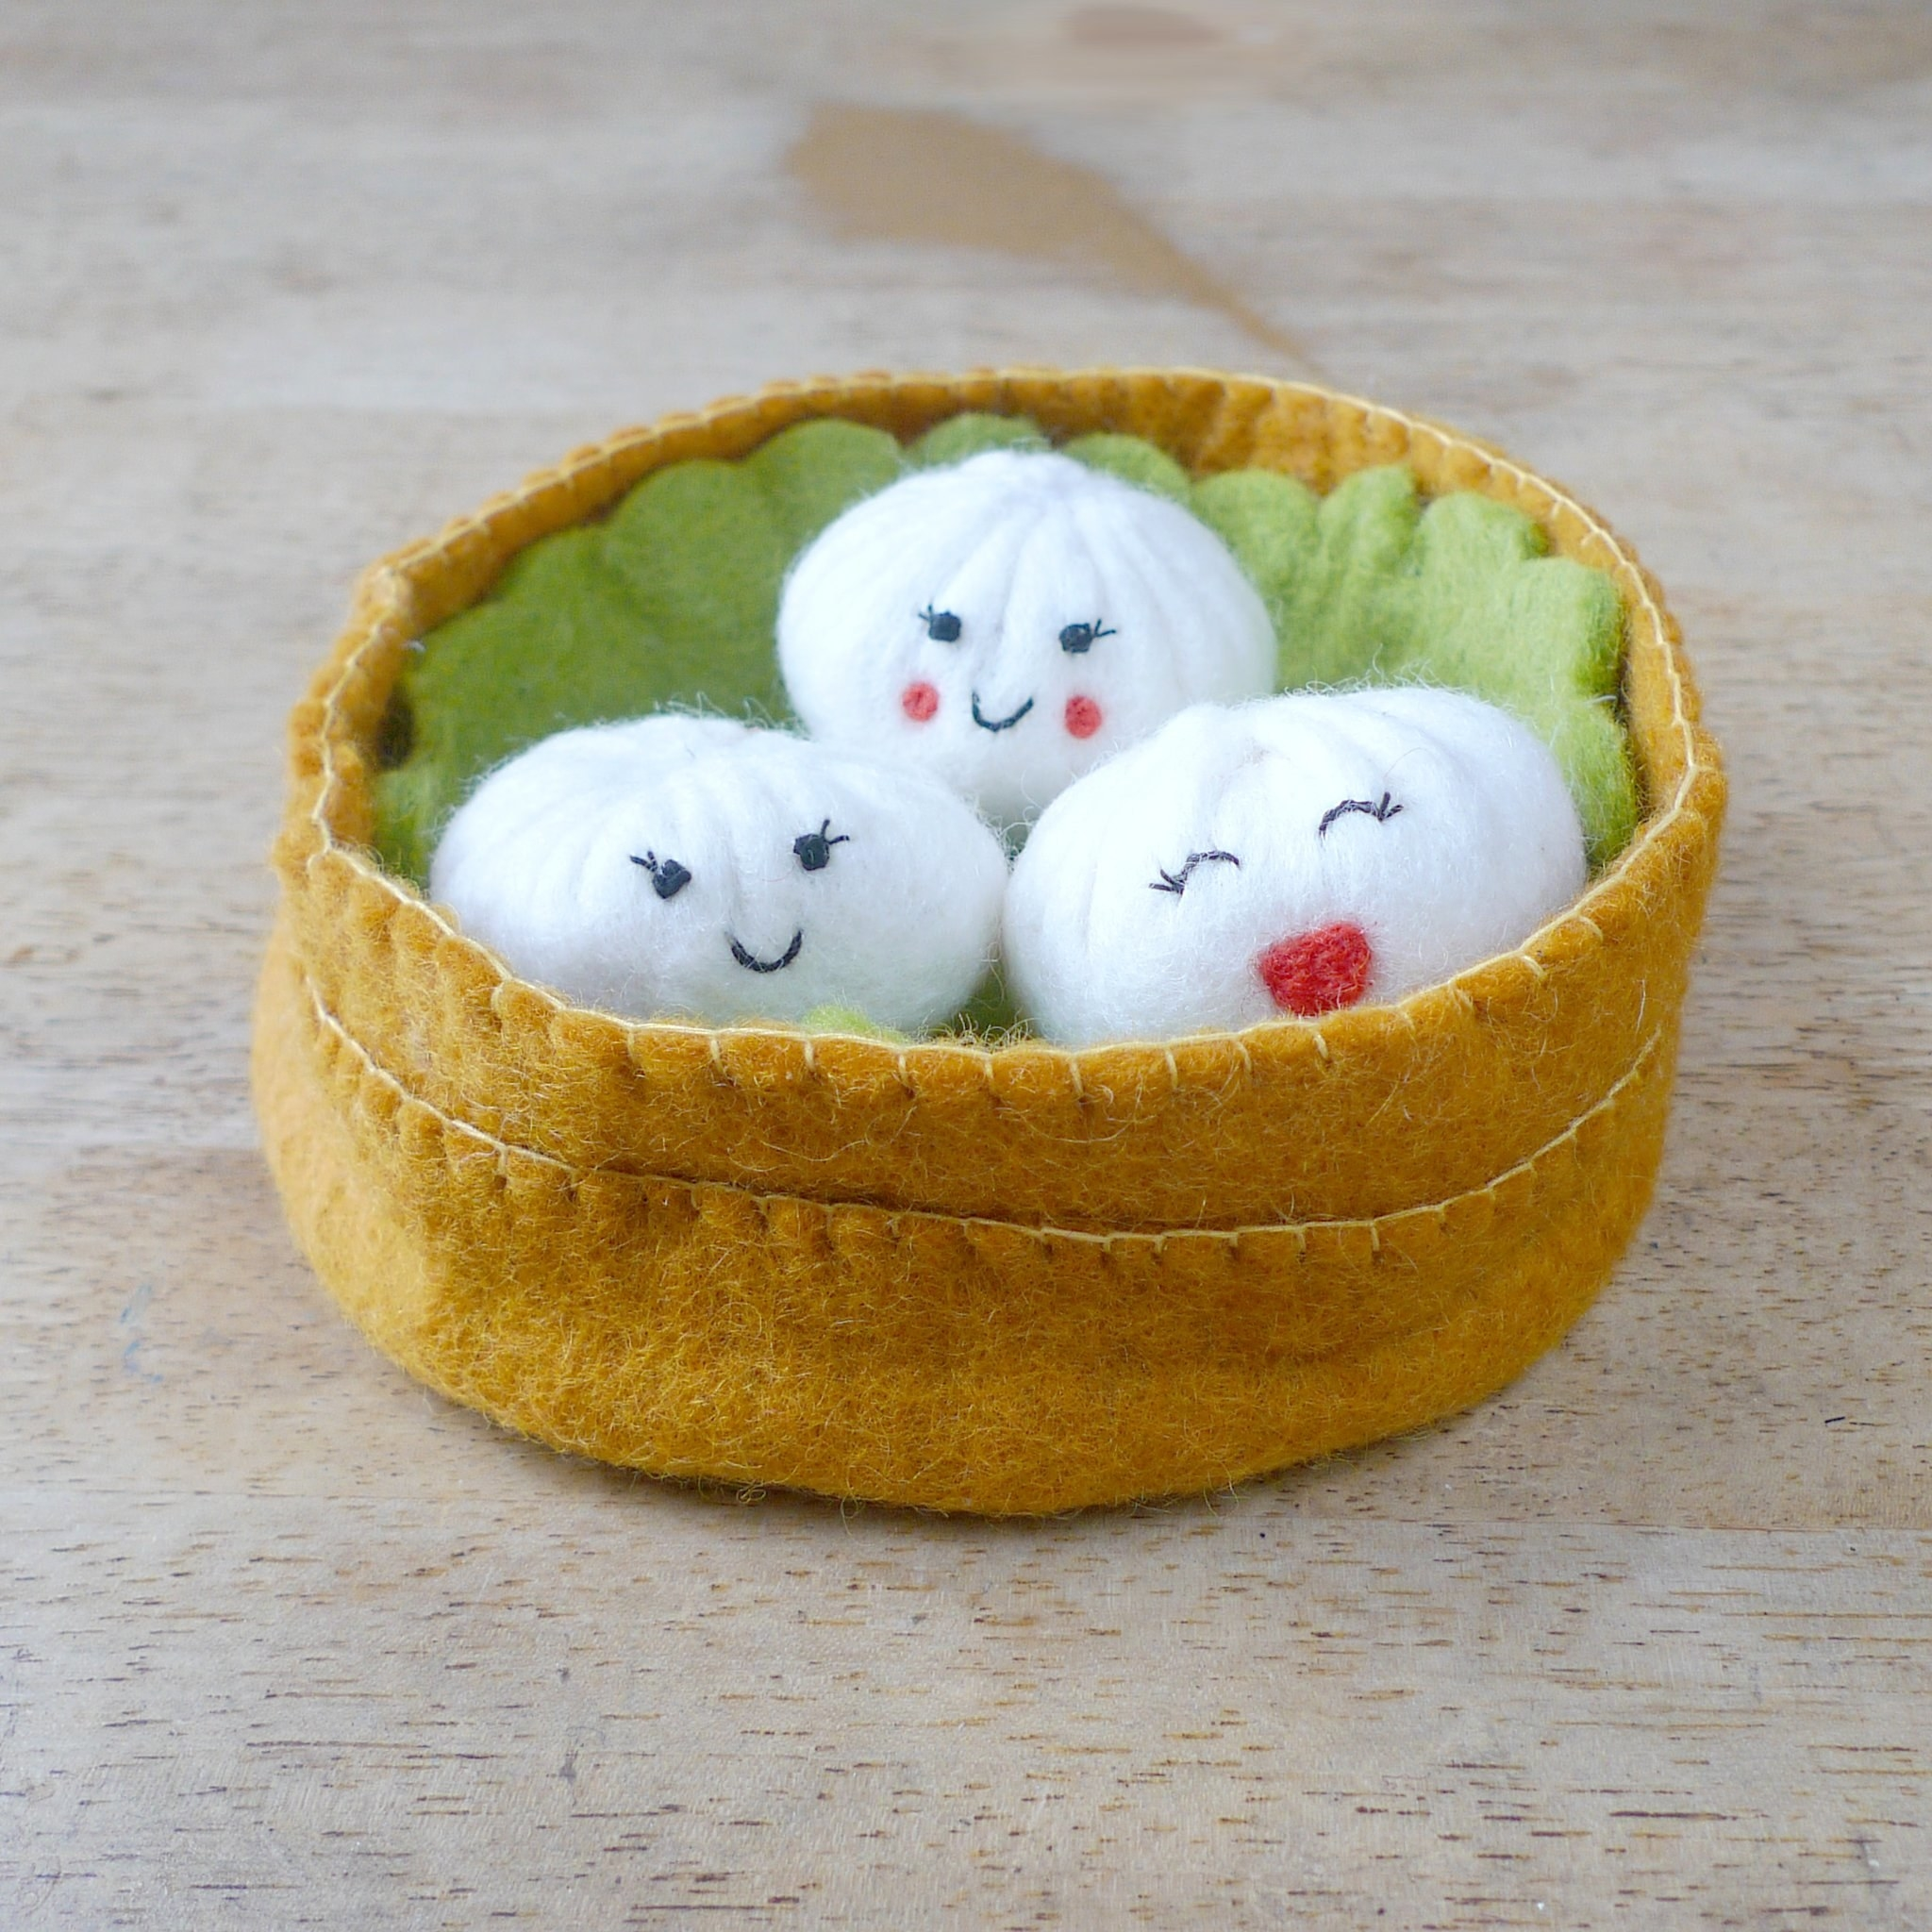 The toy that looks like like three soup (with cute smiling faces) dumplings in a steamer